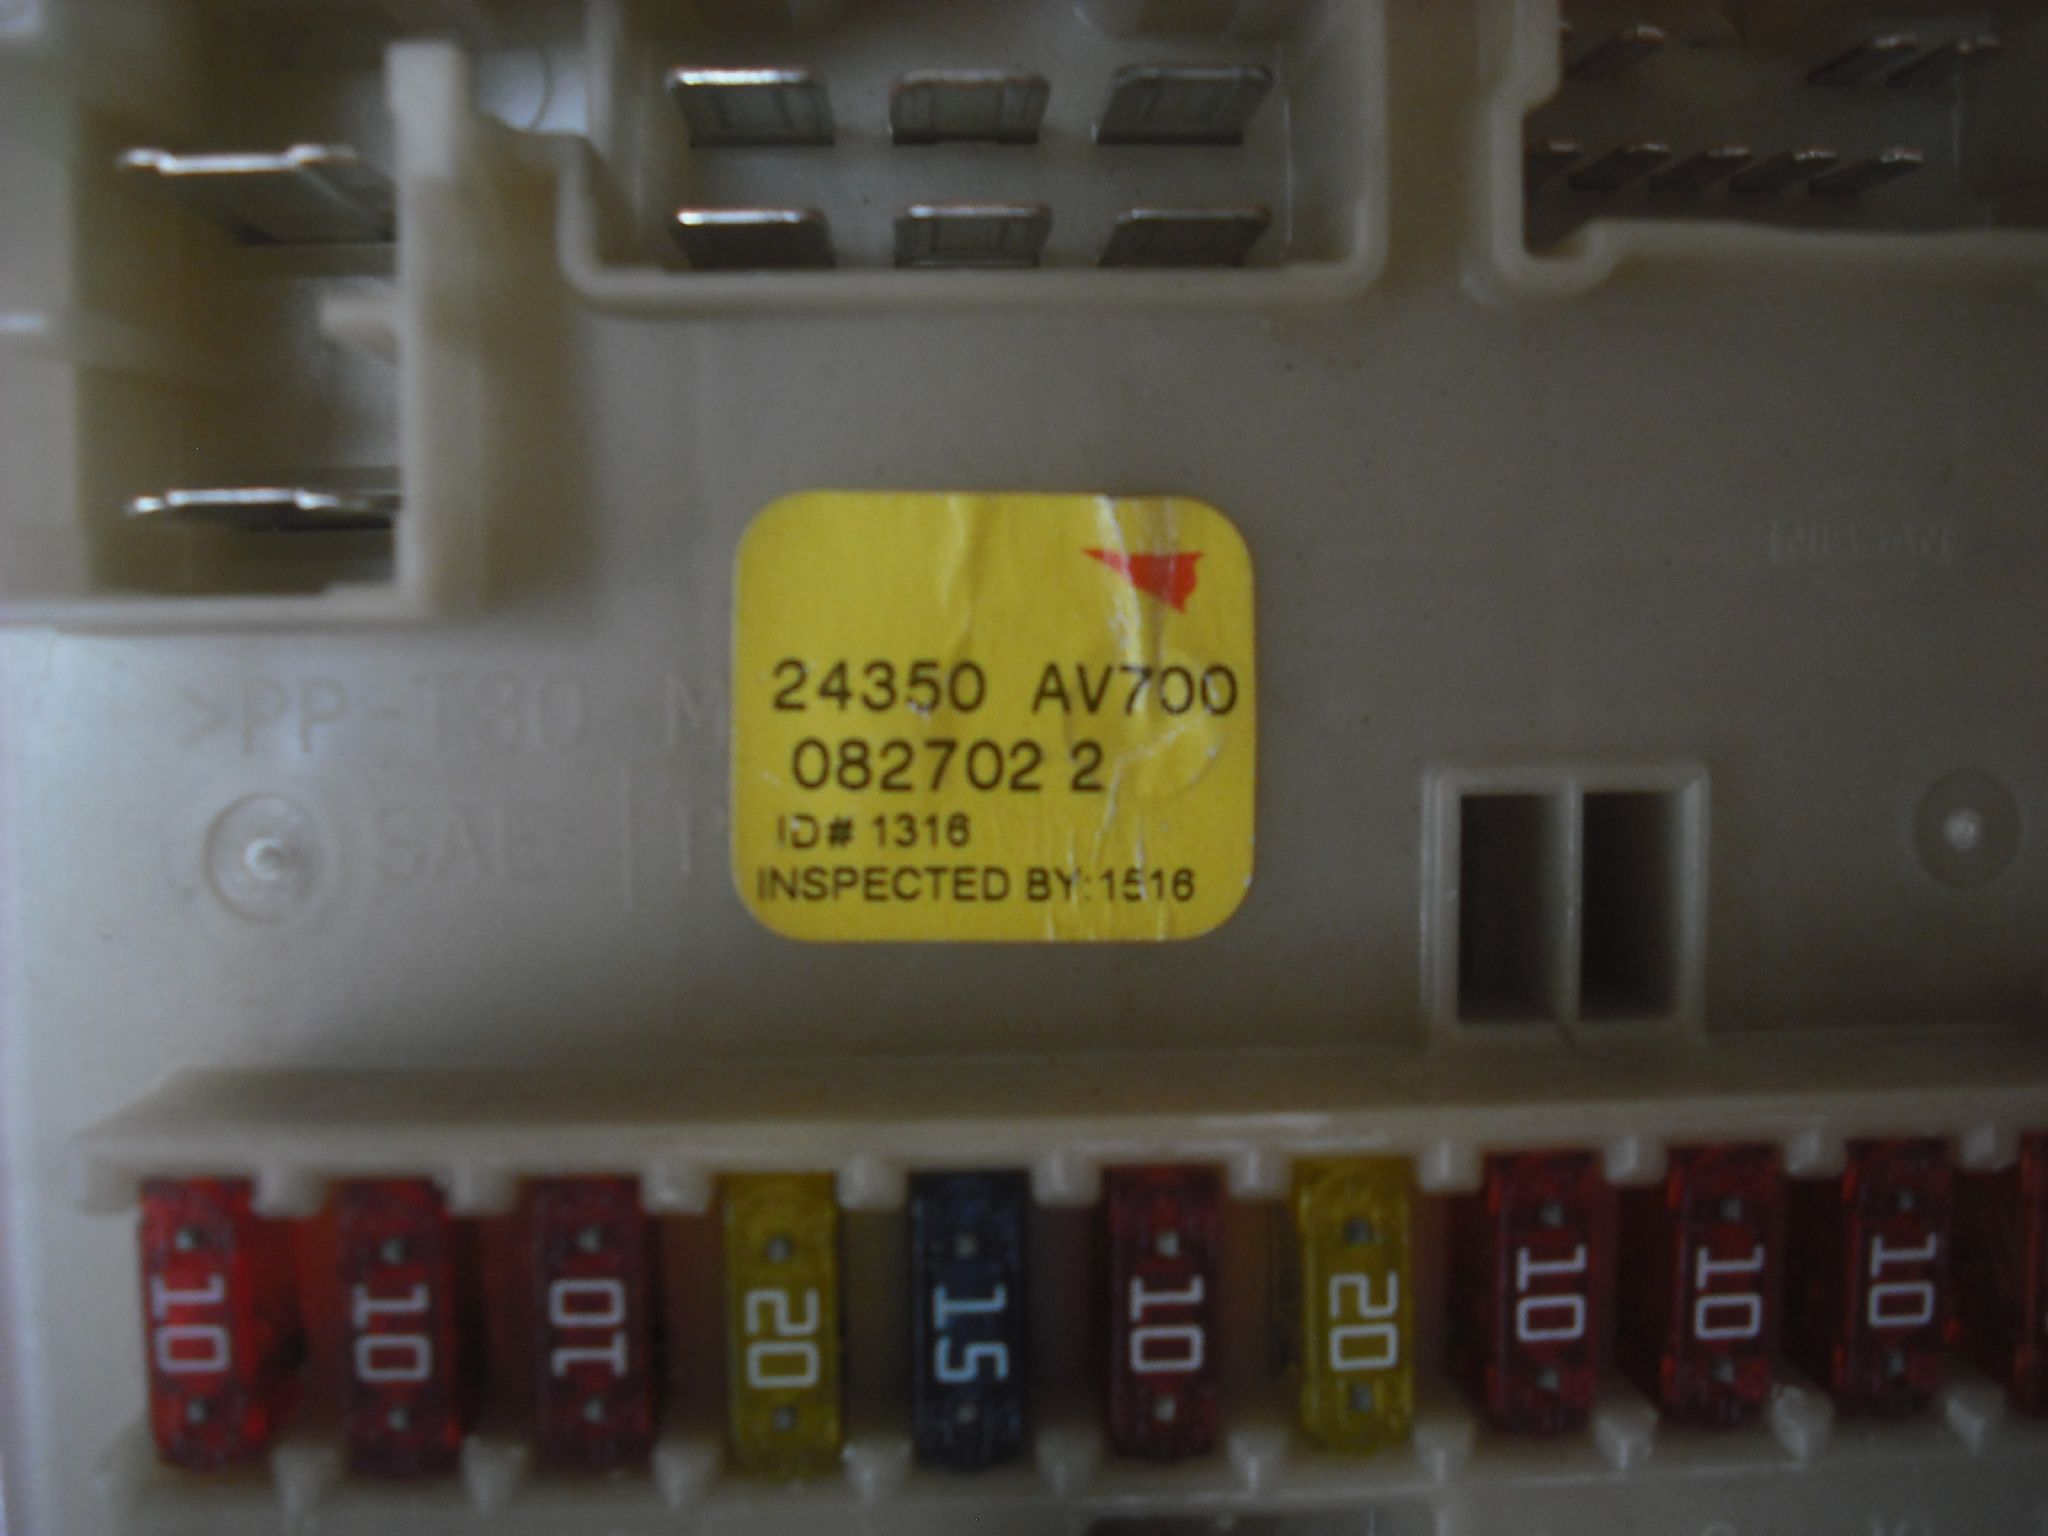 a genuine nissan primera p12 interior drivers side fuse box 24350 av700 082702 2 [2] 8697 p genuine nissan primera p12 interior drivers side fuse box 24350 nissan primera p12 fuse box layout at eliteediting.co